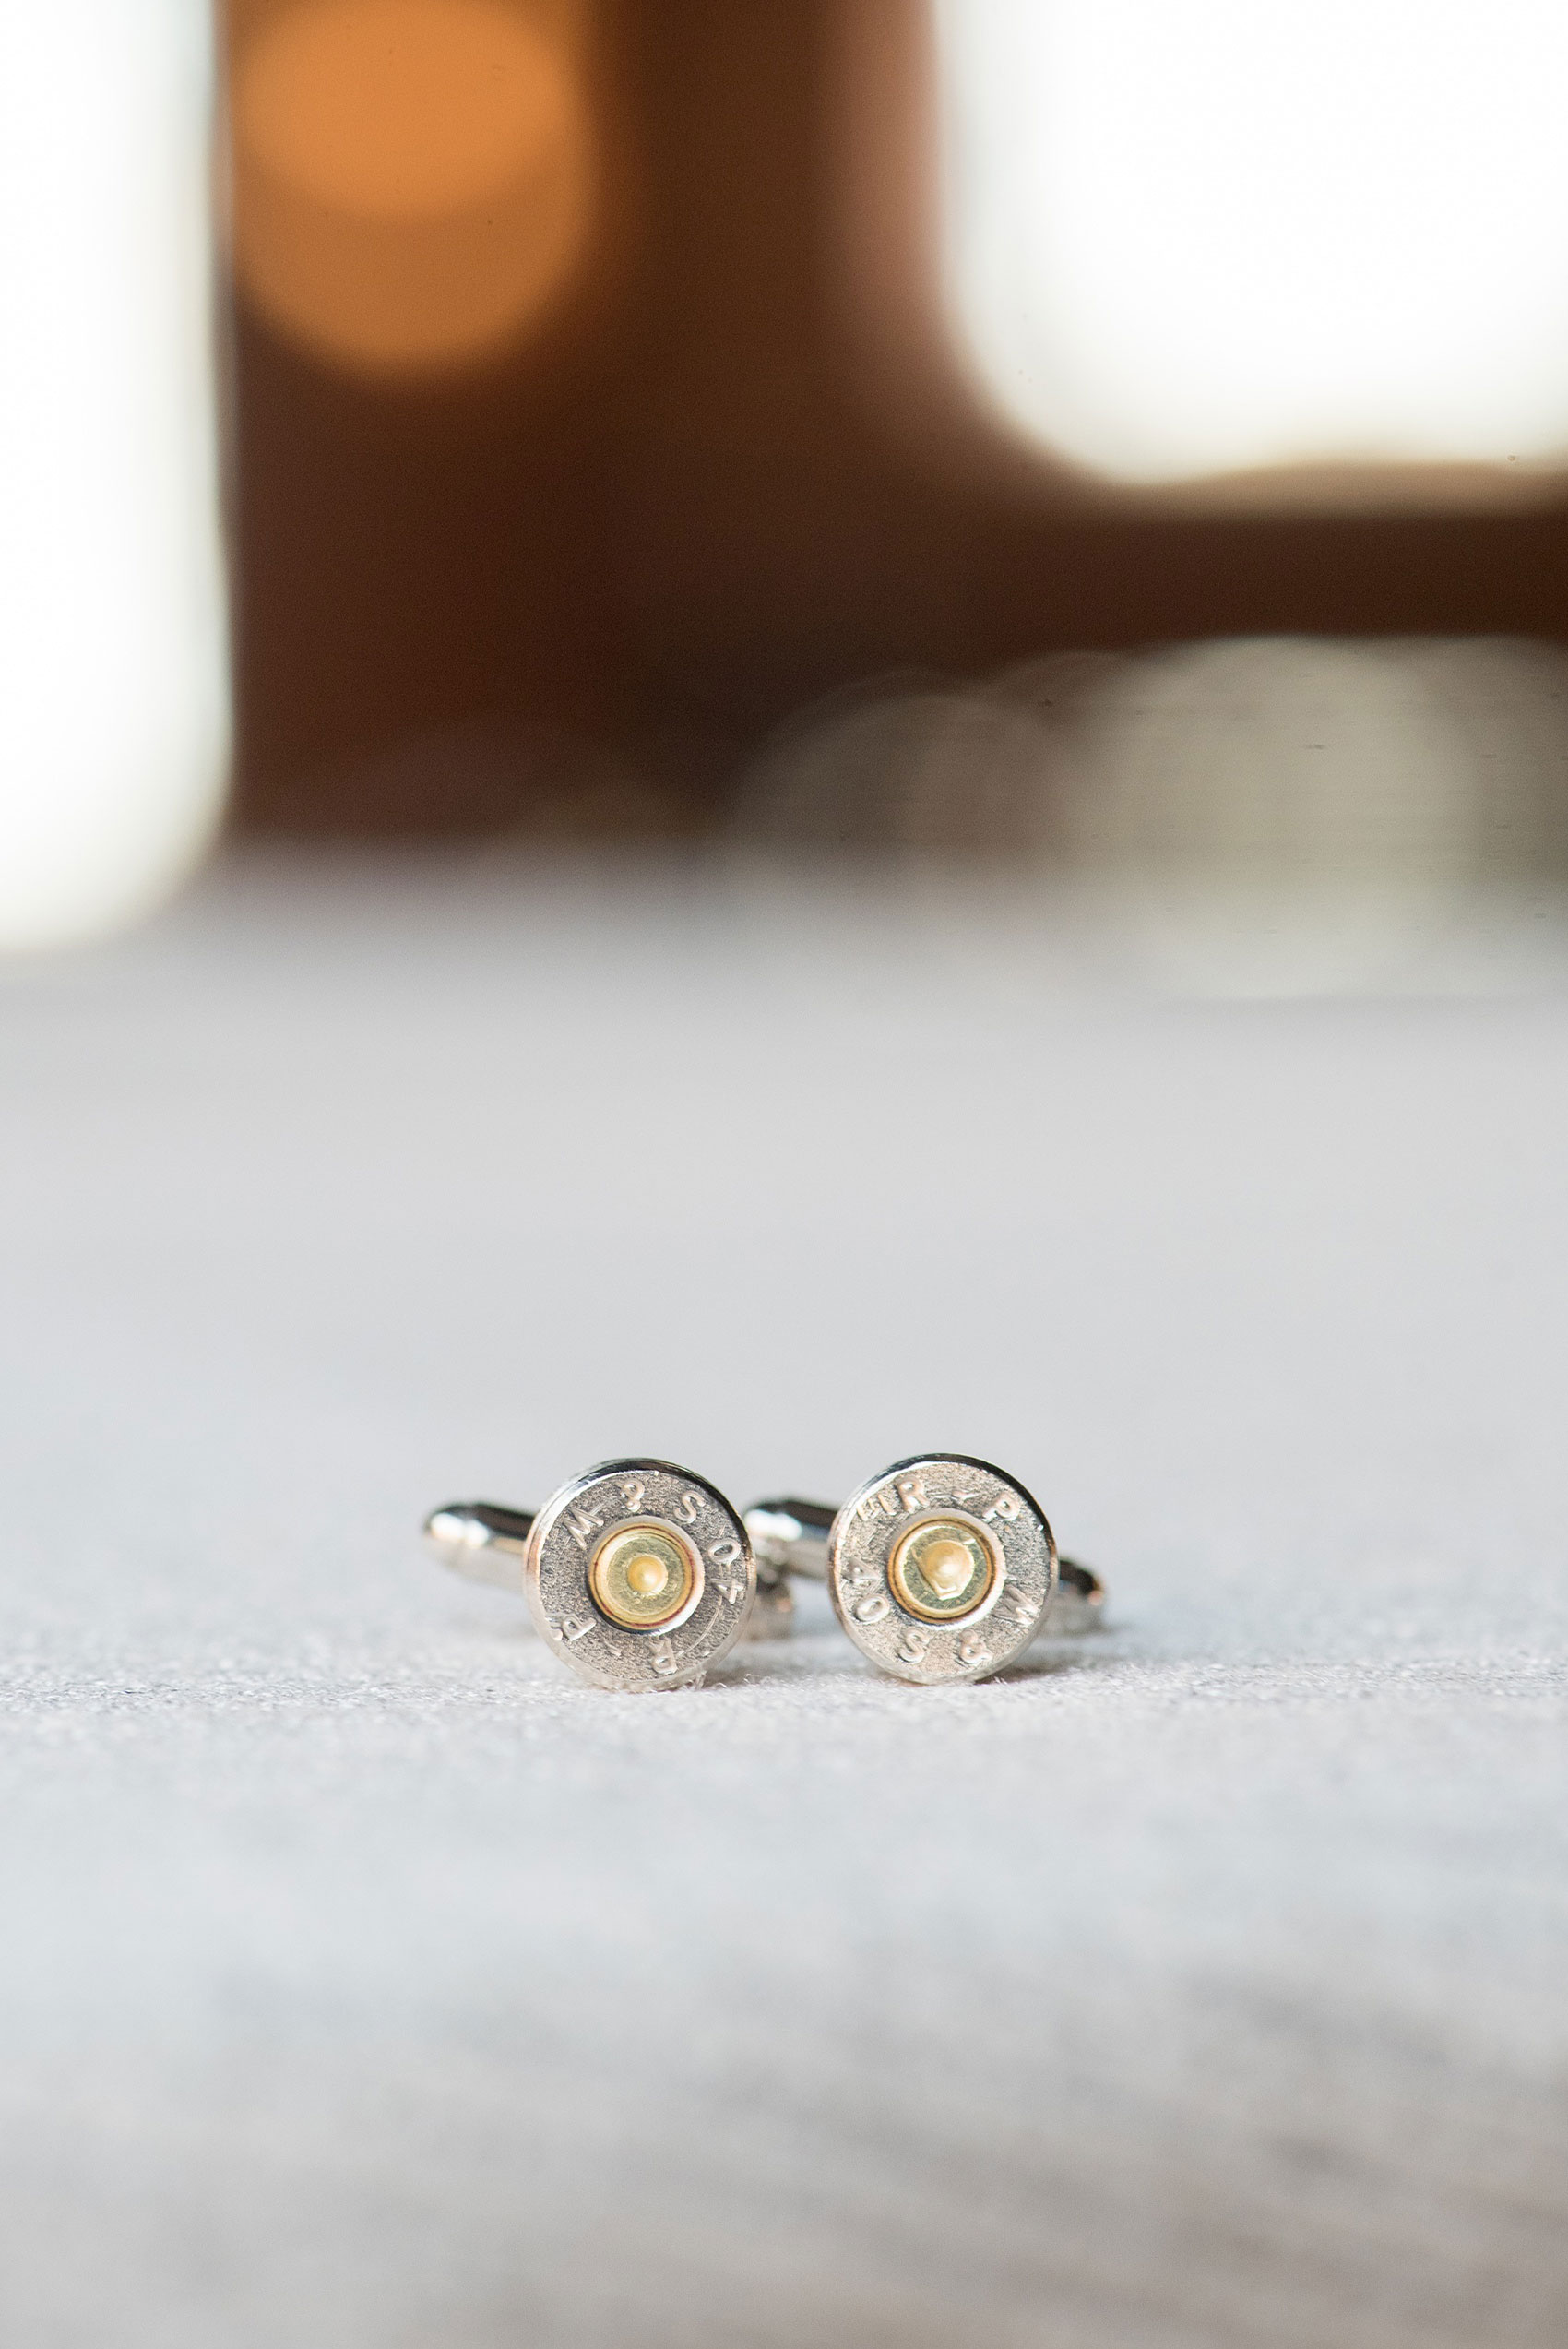 Durham wedding photos at The Cookery by Mikkel Paige Photography in North Carolina. The groomsmen wore a detail of bullet cufflinks, all police officers and some ex-military friends of the groom.